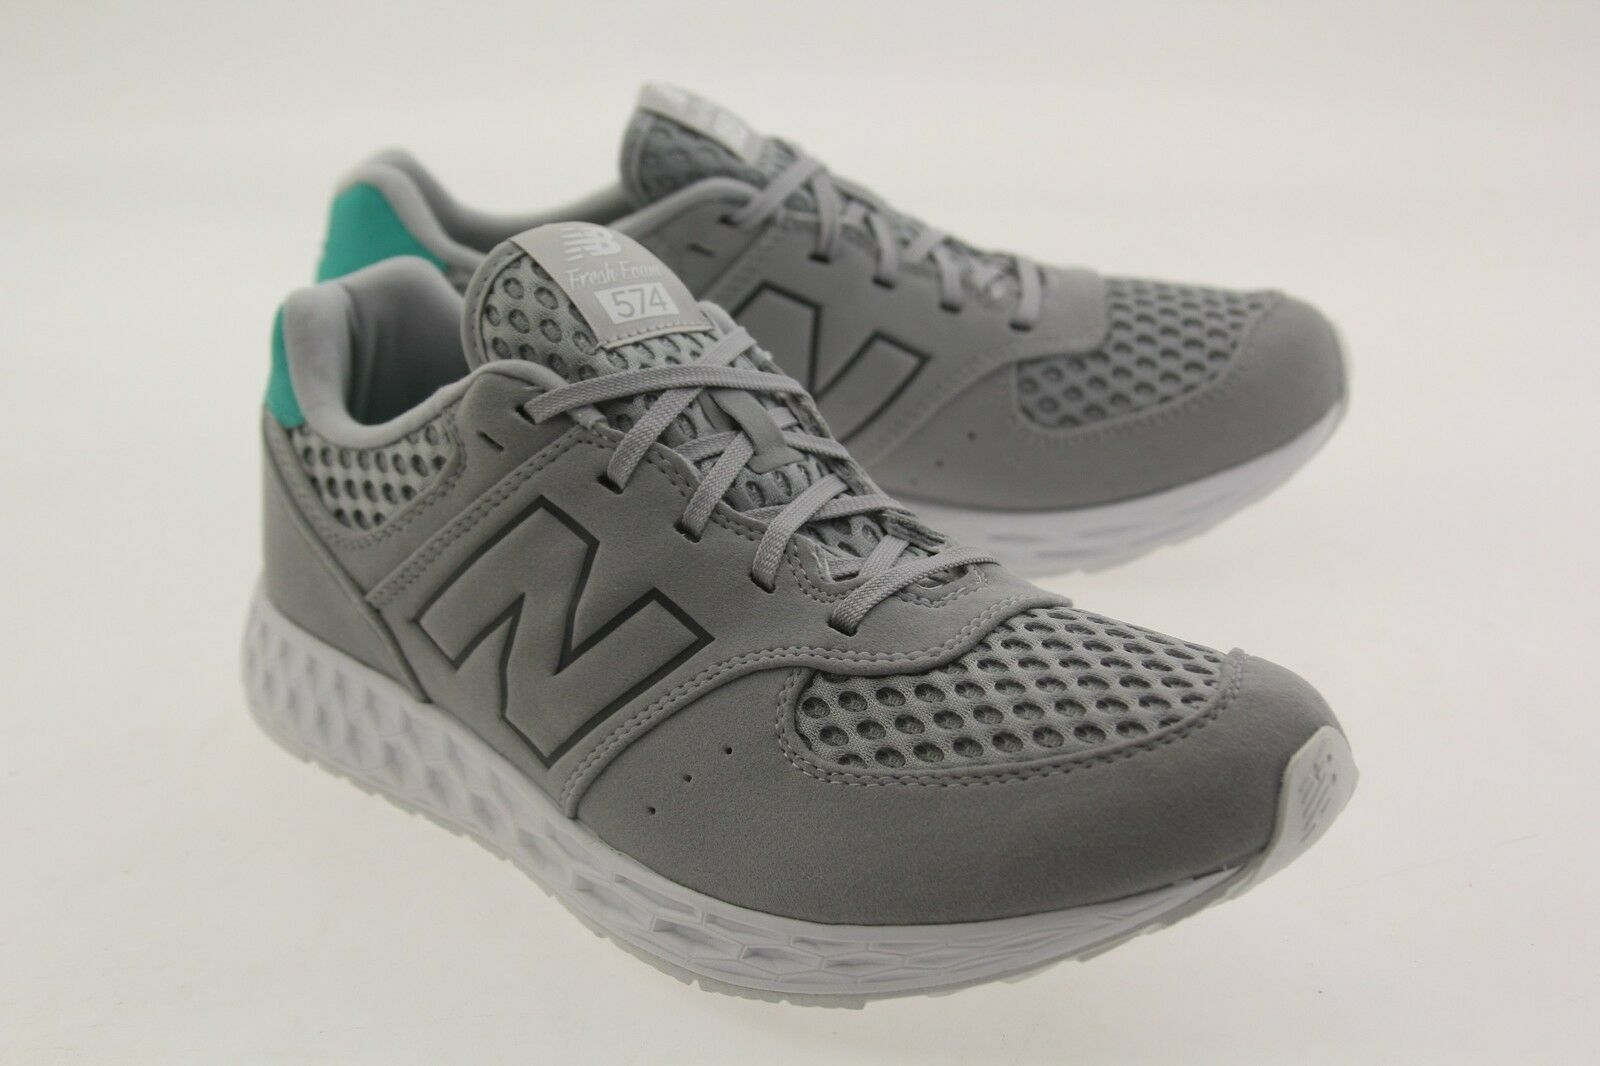 New Fresh Balance Uomo 574 Fresh New Foam Breathe MFL574NC gray light grey MFL574NC cacf63